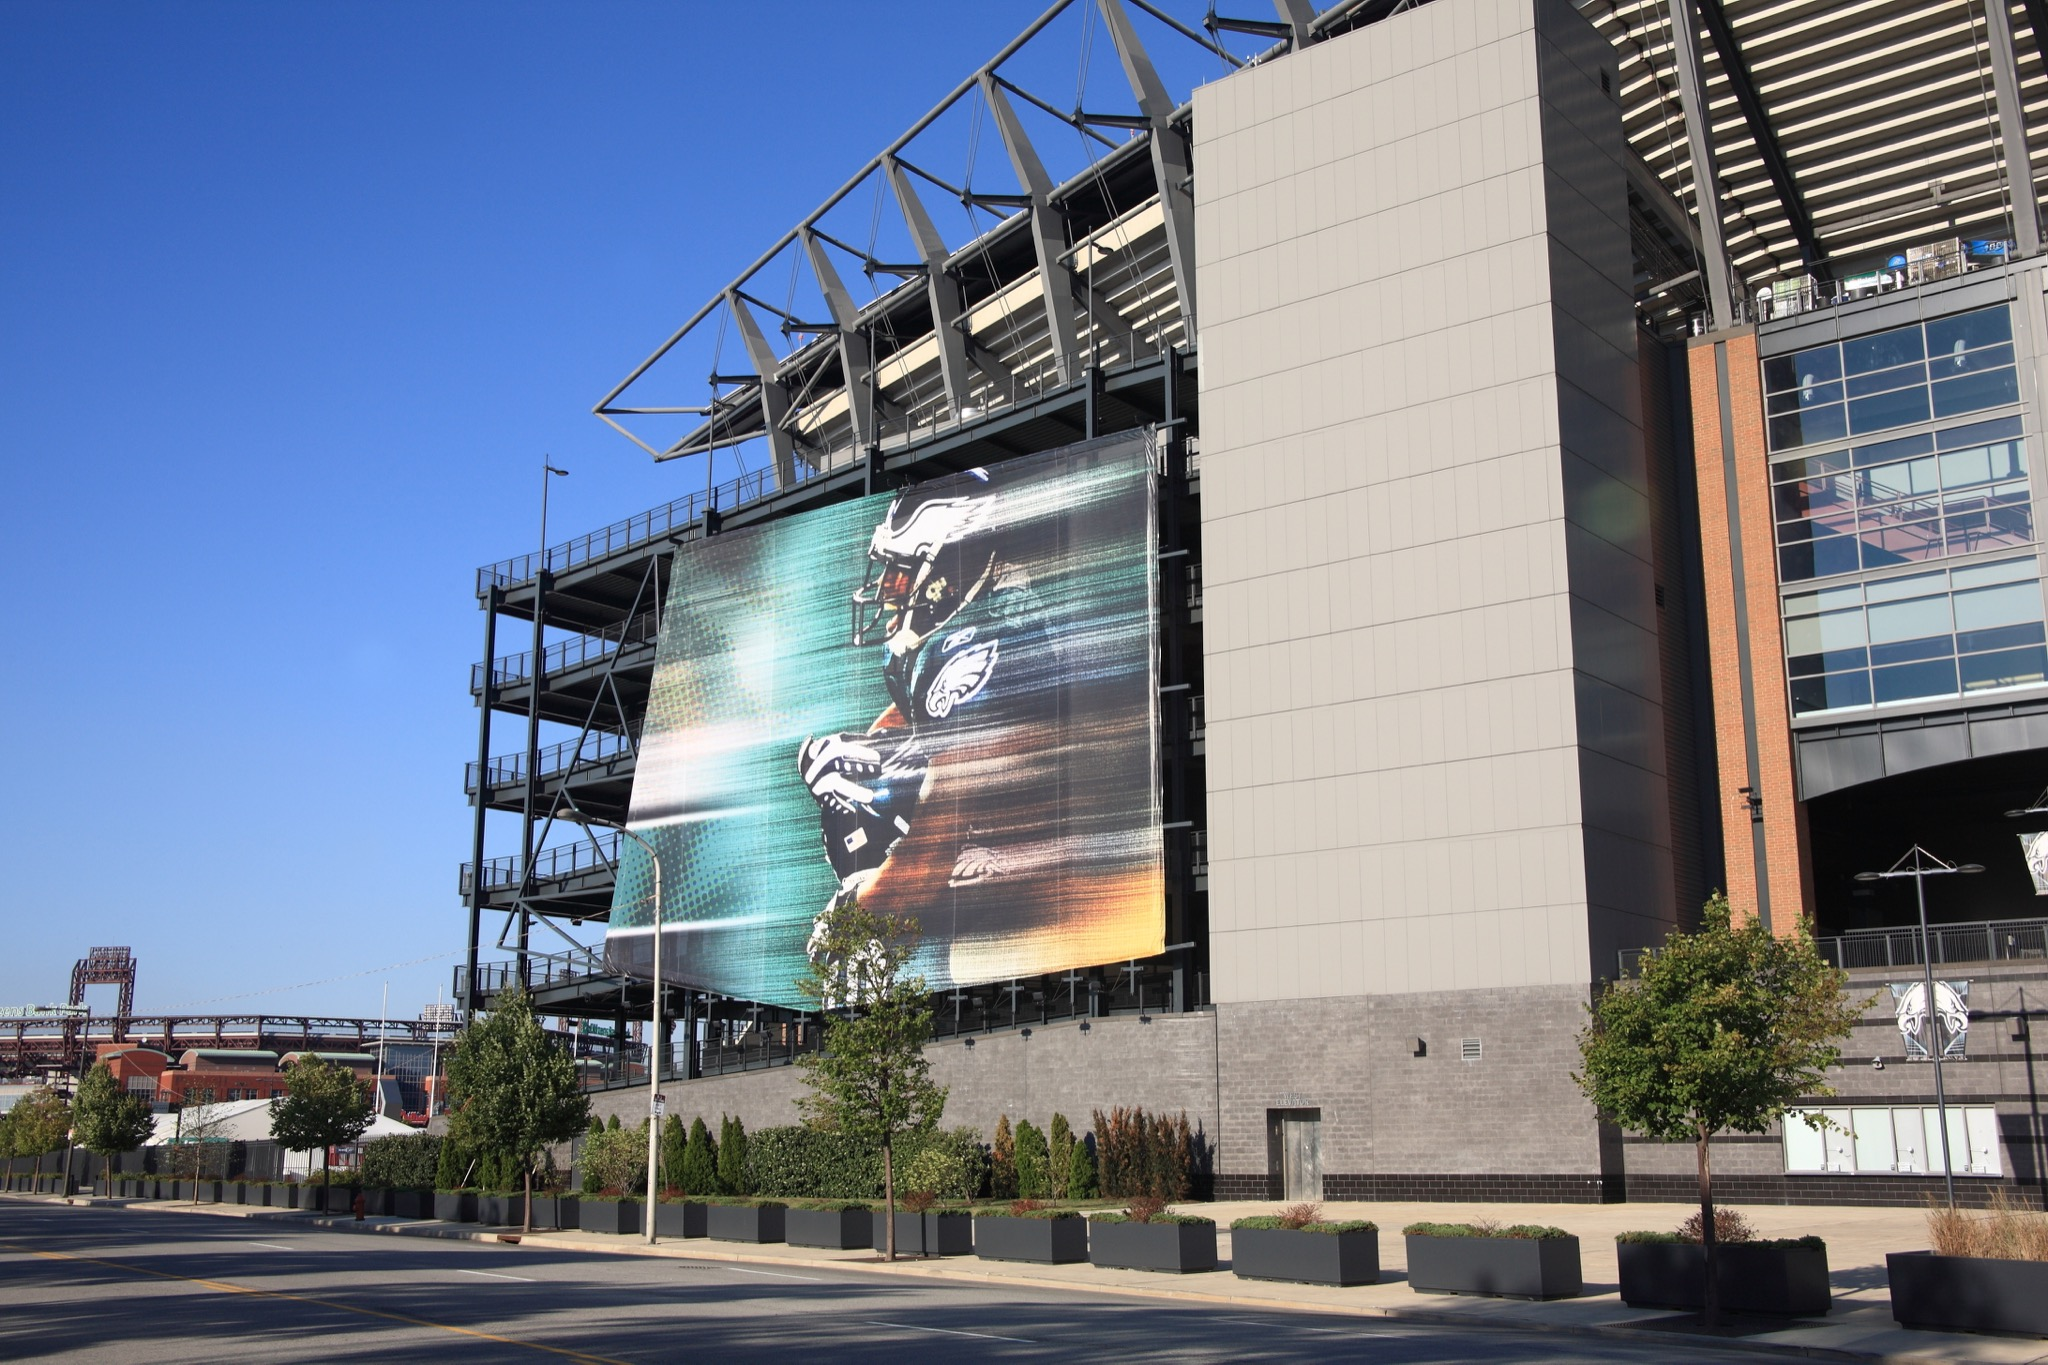 PHILADELPHIA - SEPTEMBER 7: Lincoln Financial Field, home of the National Football League's Eagles on September 7, 2010 in Philadelphia. The stadium opened in 2003, replacing nearby Veterans Stadium. - Image